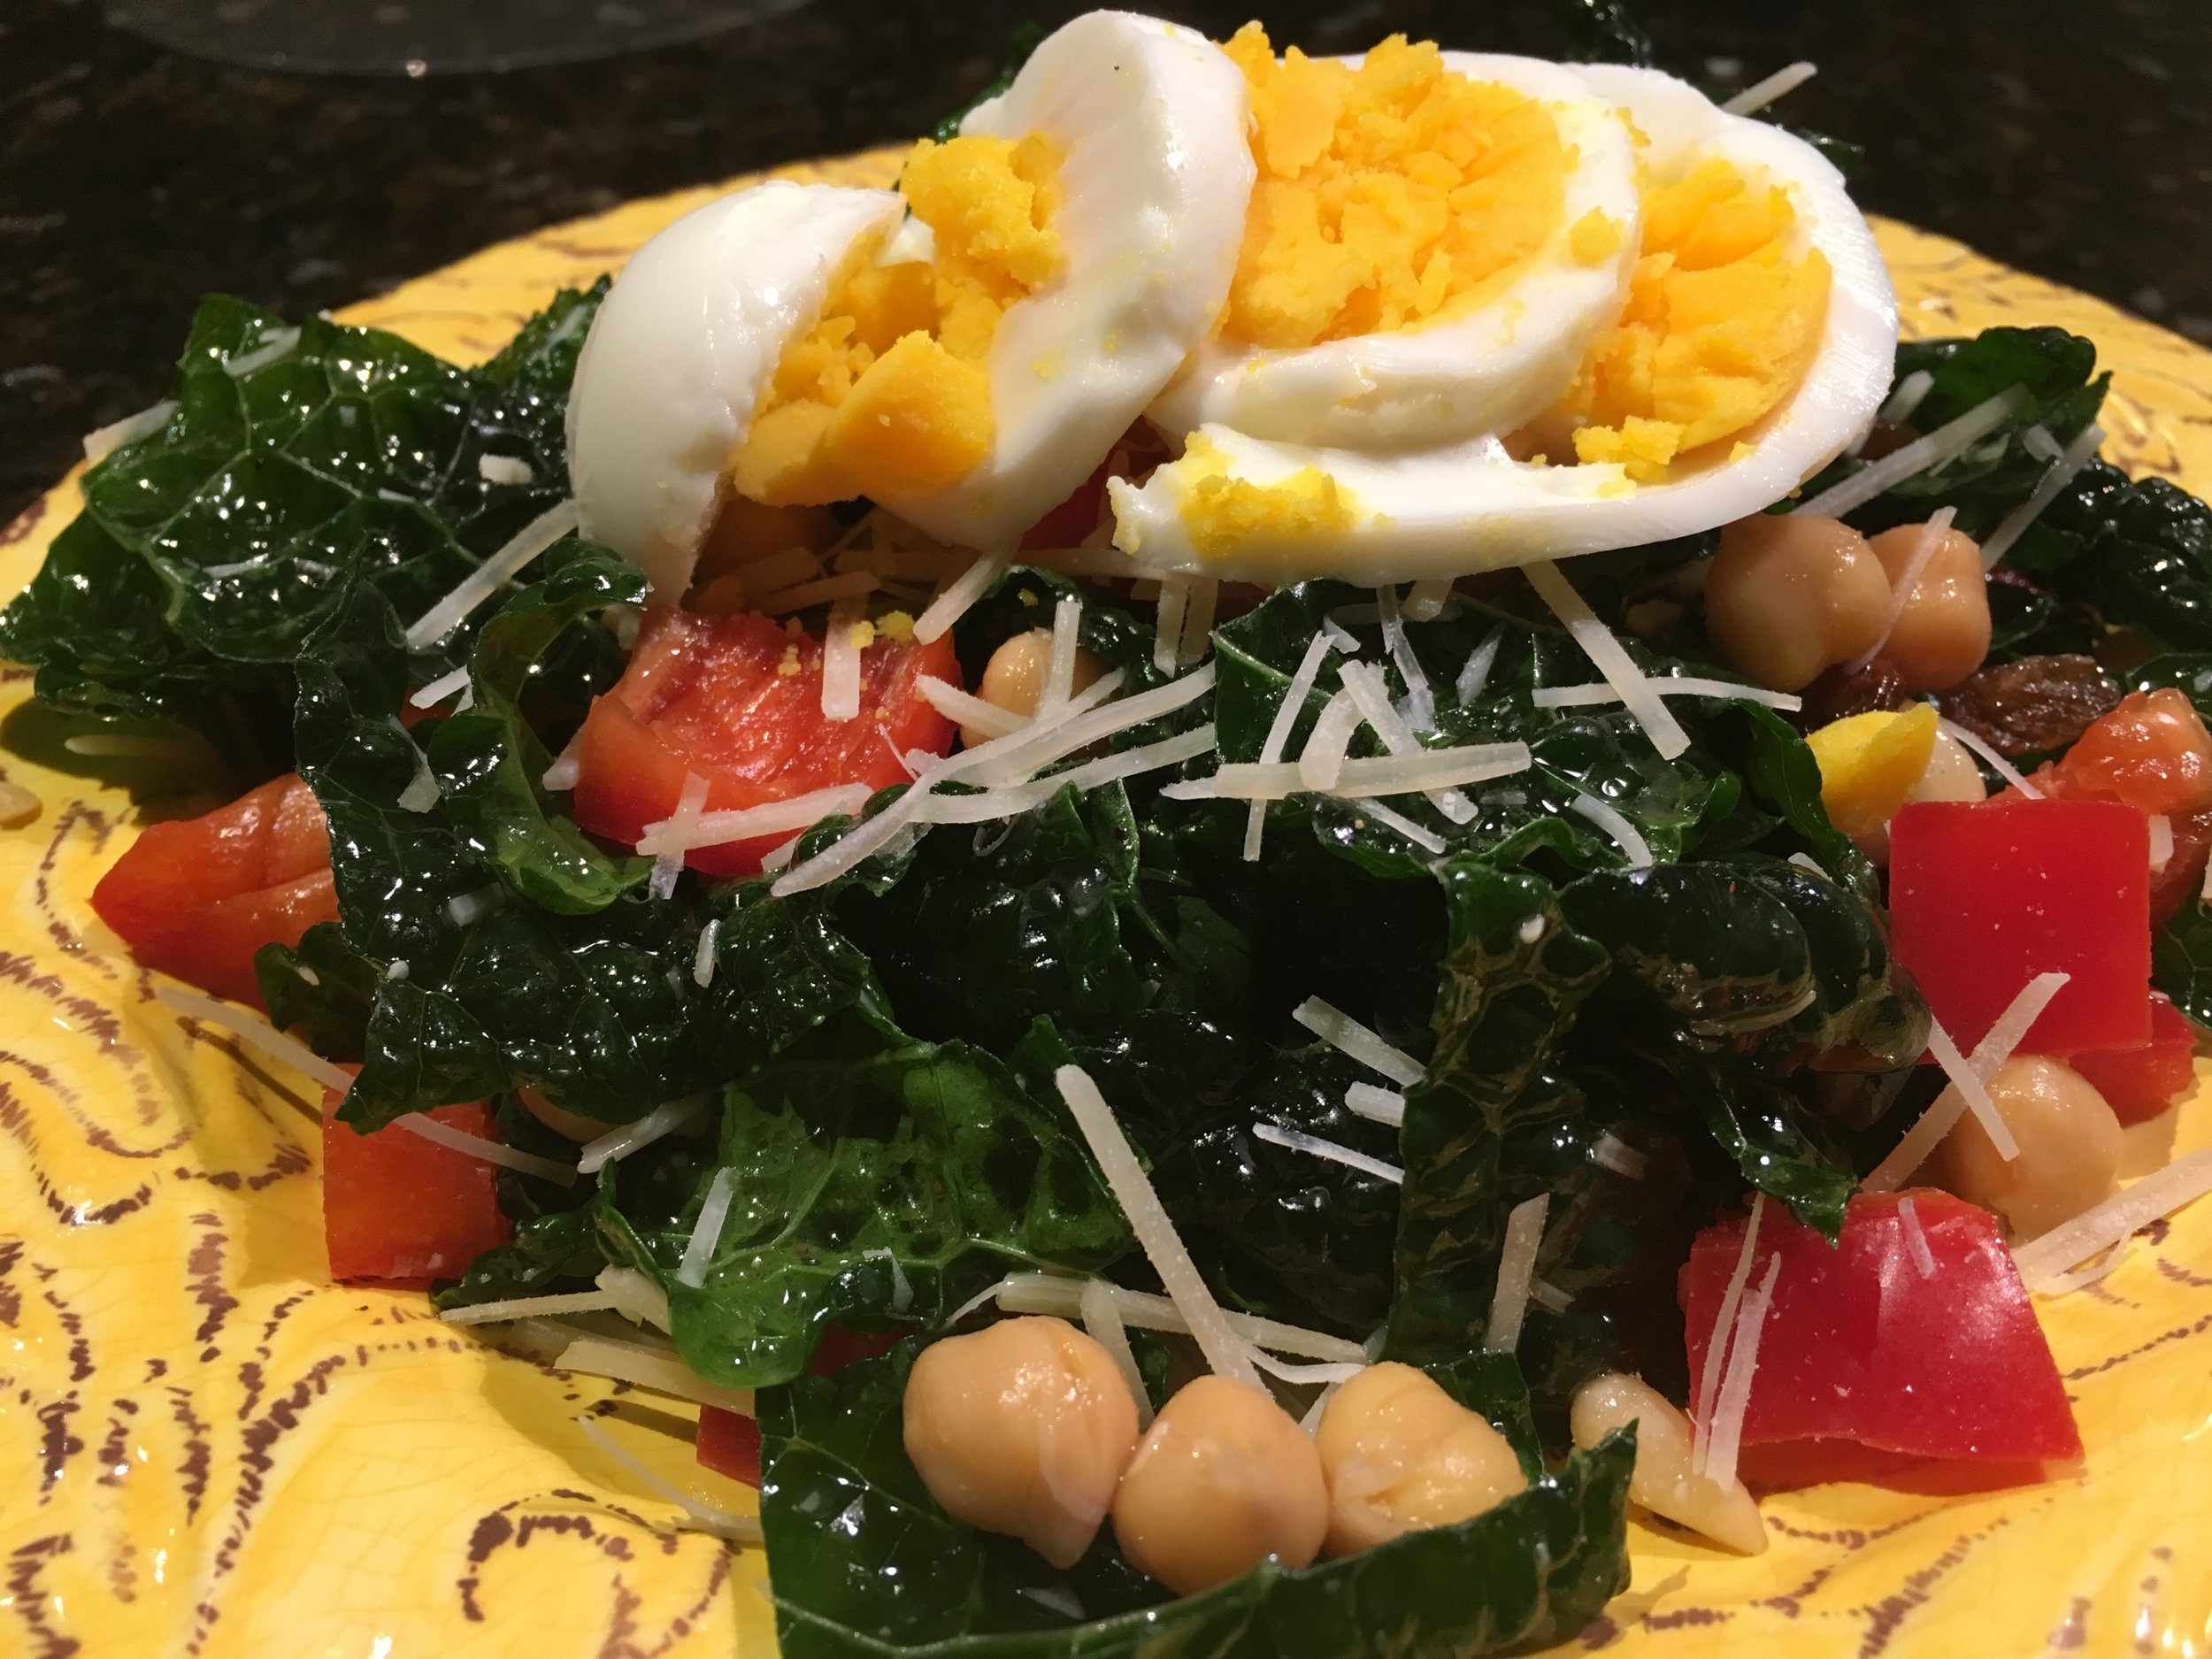 Tuscan Kale Salad with Hard-boiled eggs.JPG